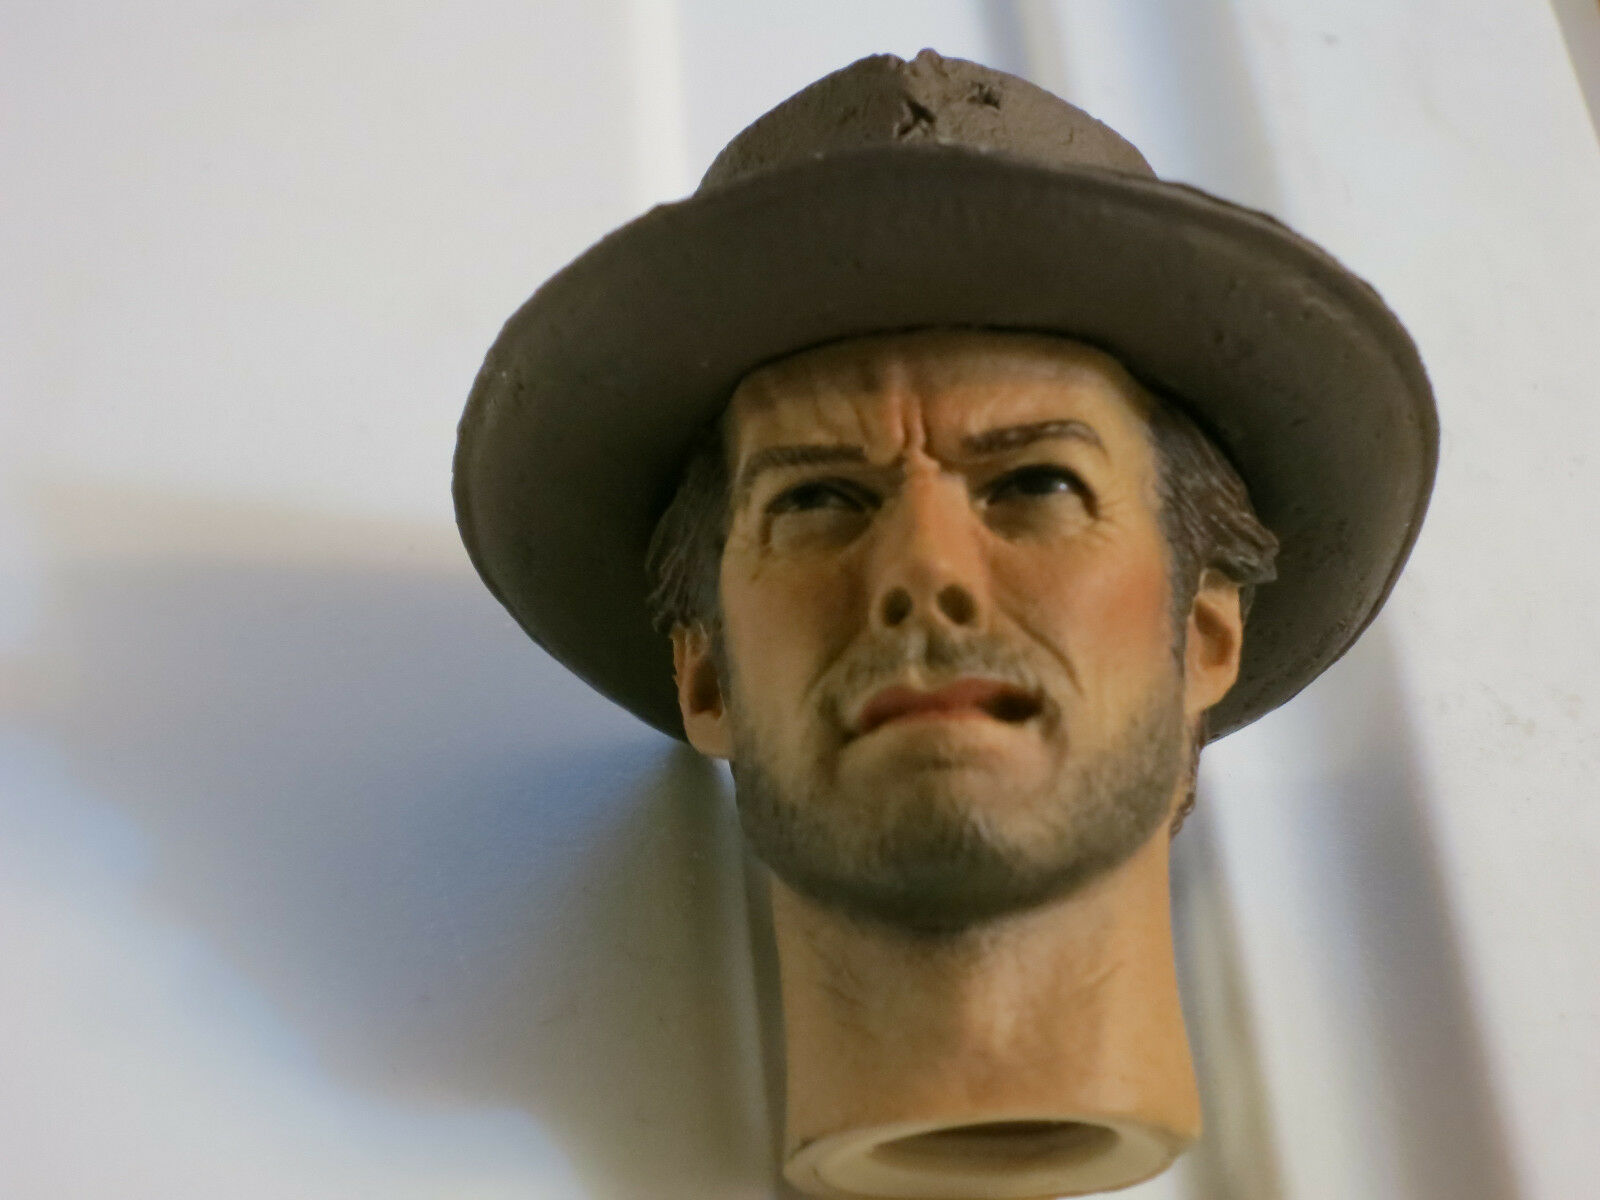 REDMAN 1 6th Loose The Good Head Sculpt (Western Cowboy Era) for 12  Figures